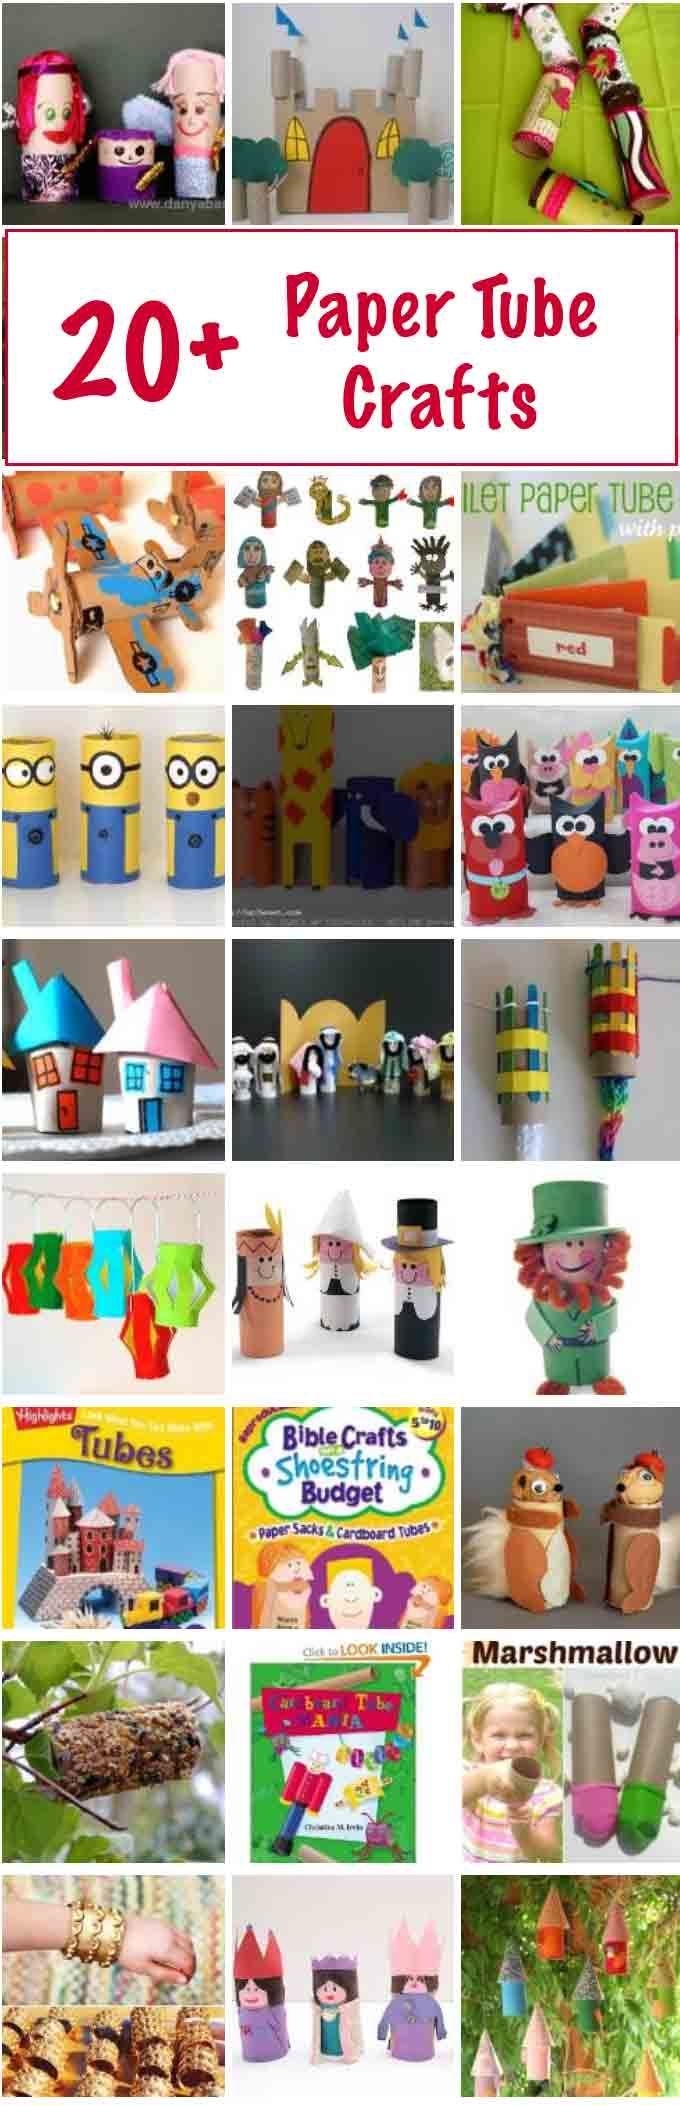 20+ Toilet Paper Roll Crafts: Paper Tube Fun